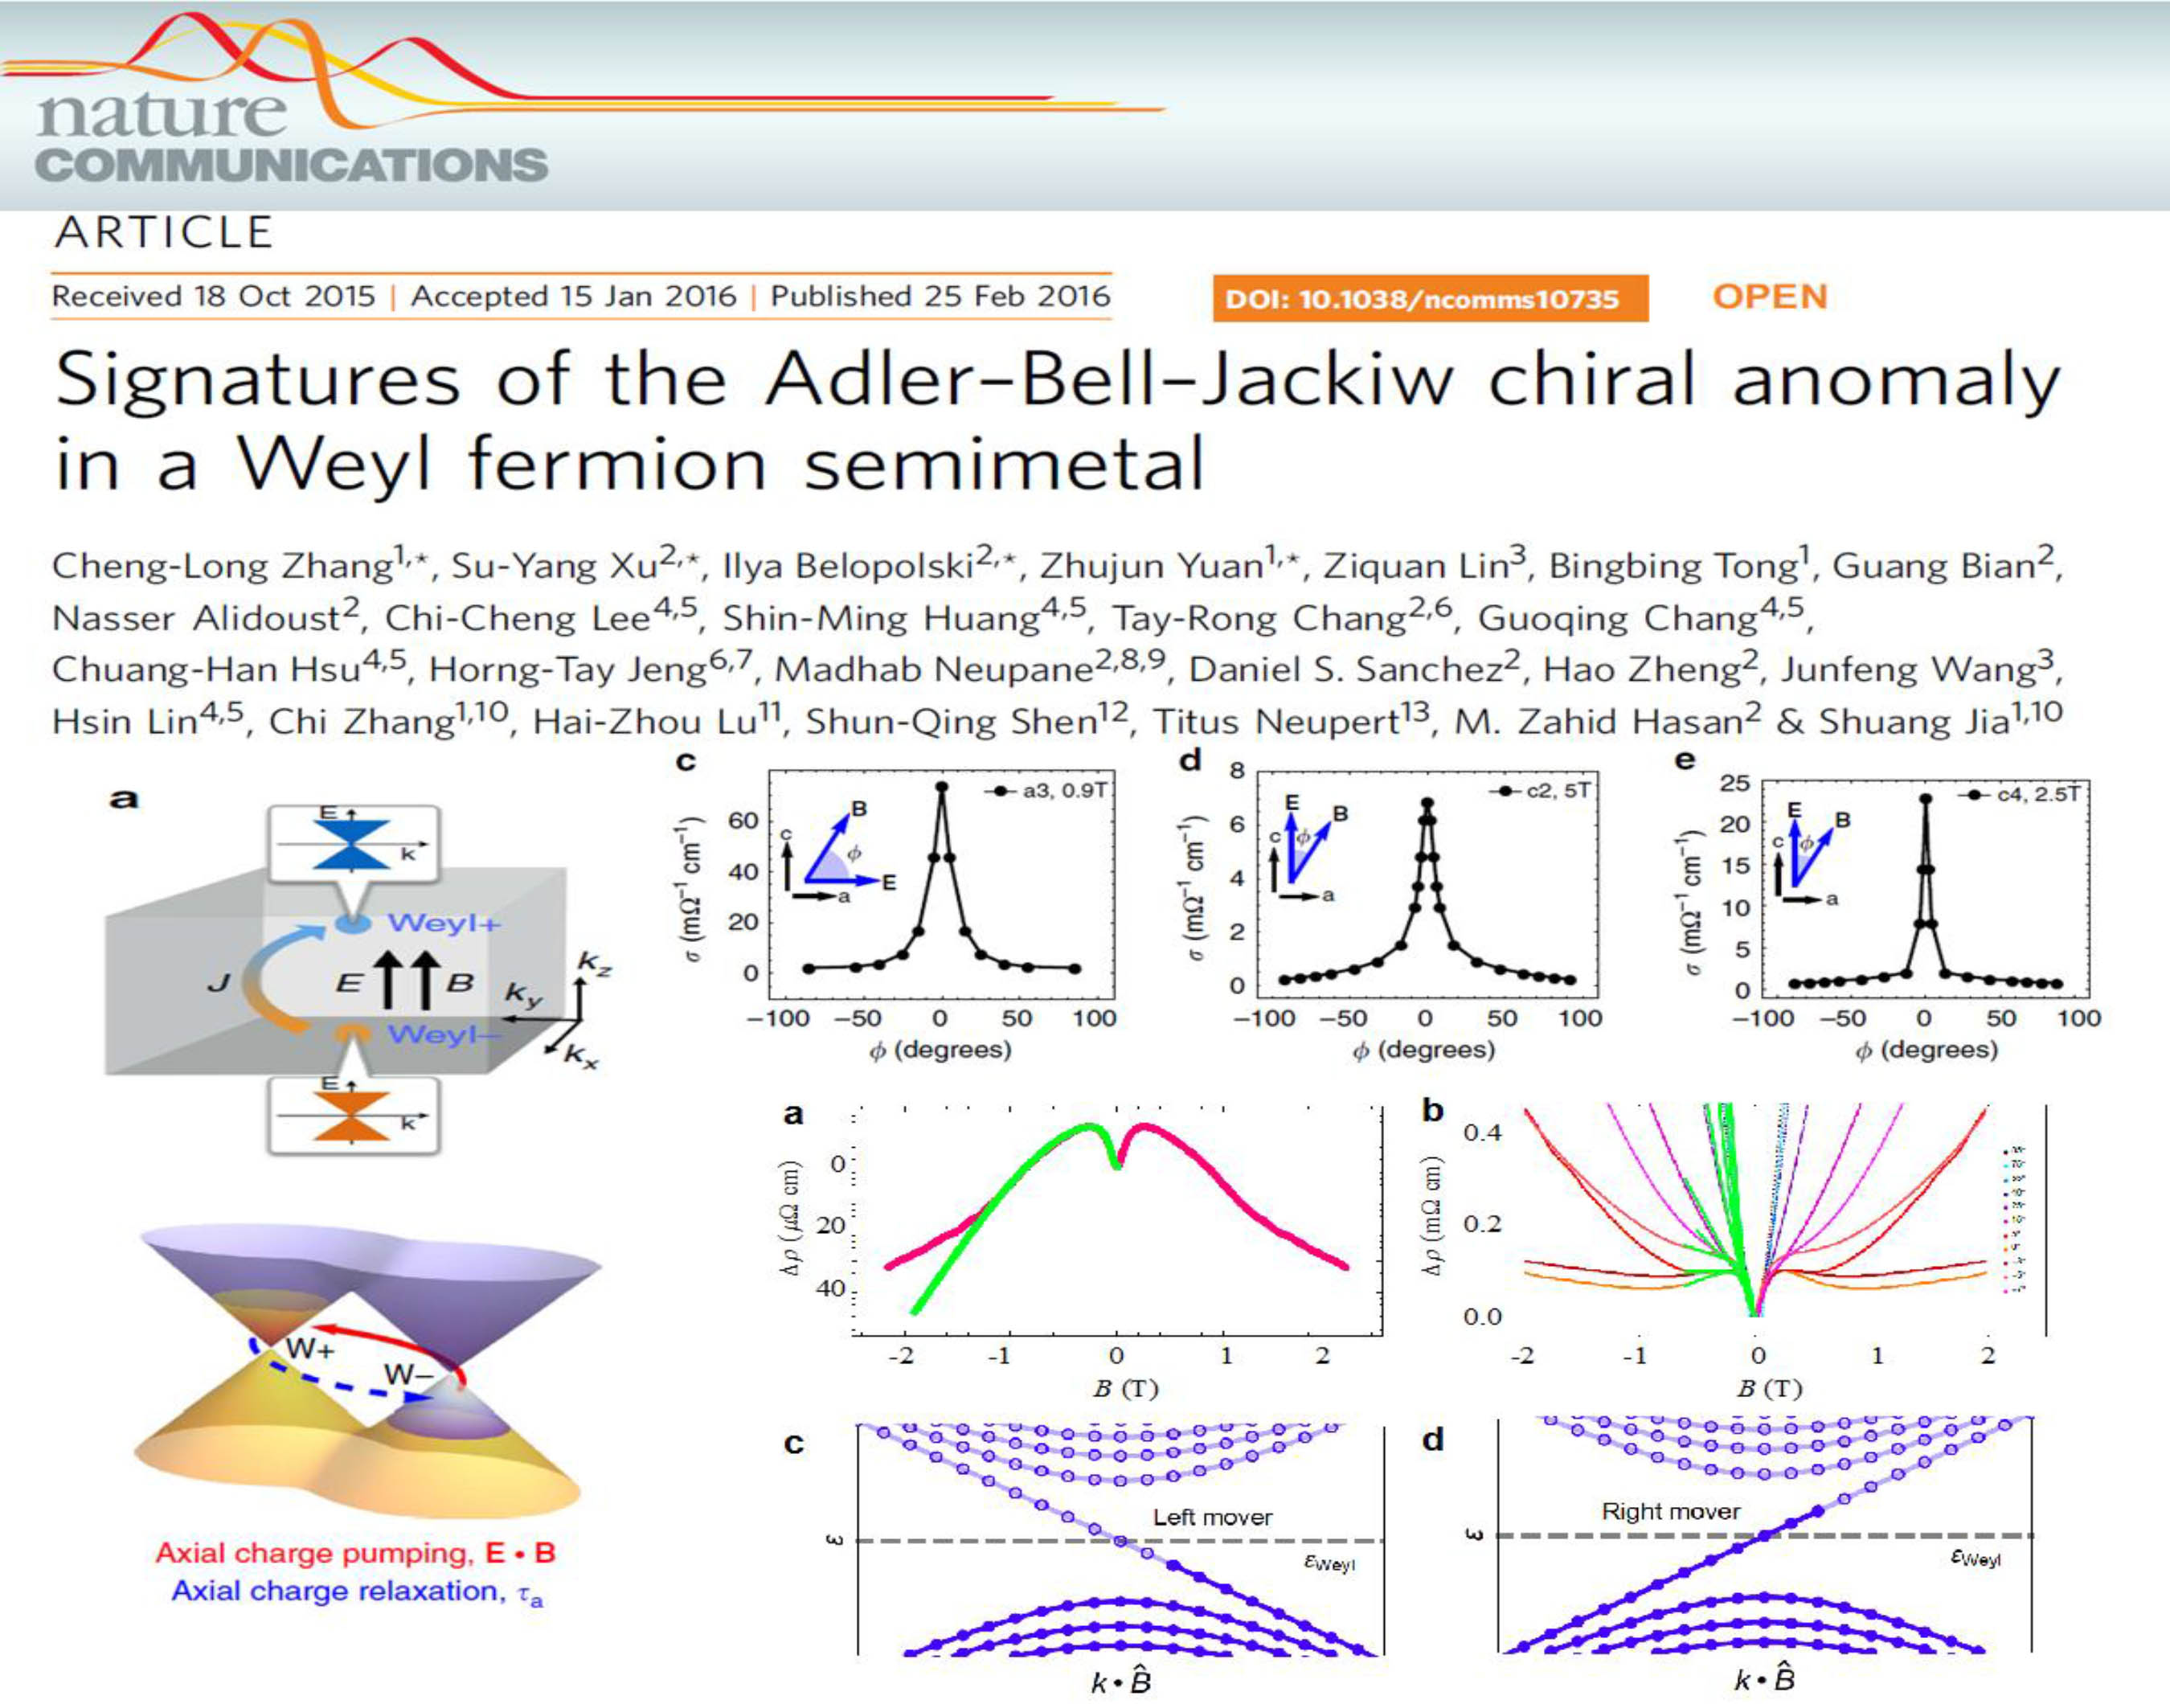 Signatures Of The Adler Bell Jackiw Chiral Anomaly In A Weyl Semimetal. C.  Zhang, S. Y. Xu, I. Belopolski, Z. Yuan, Z. Lin, B. Tong, N. Alidoust,  C. C. Lee, ...